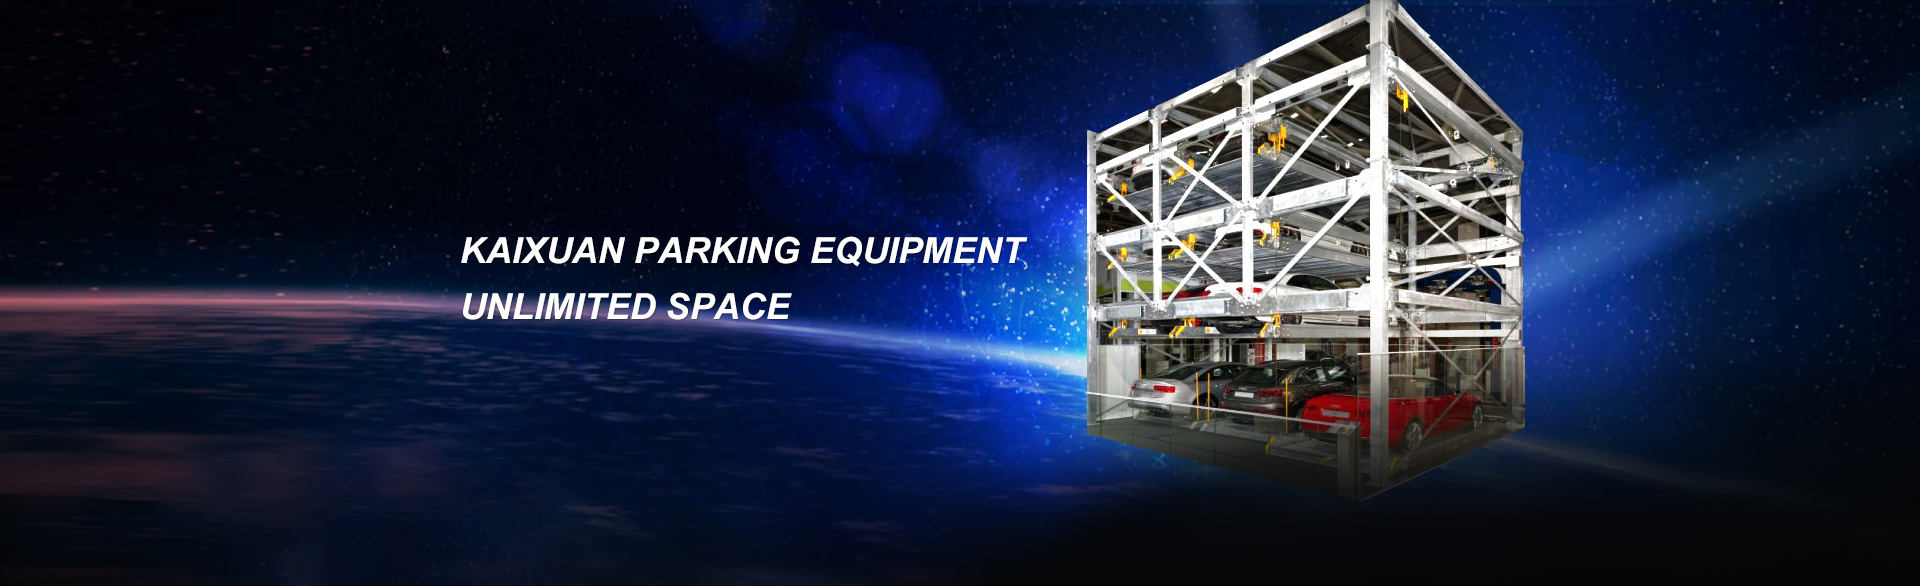 Kaixuan Parking Equipment Provides You With Unlimited Space